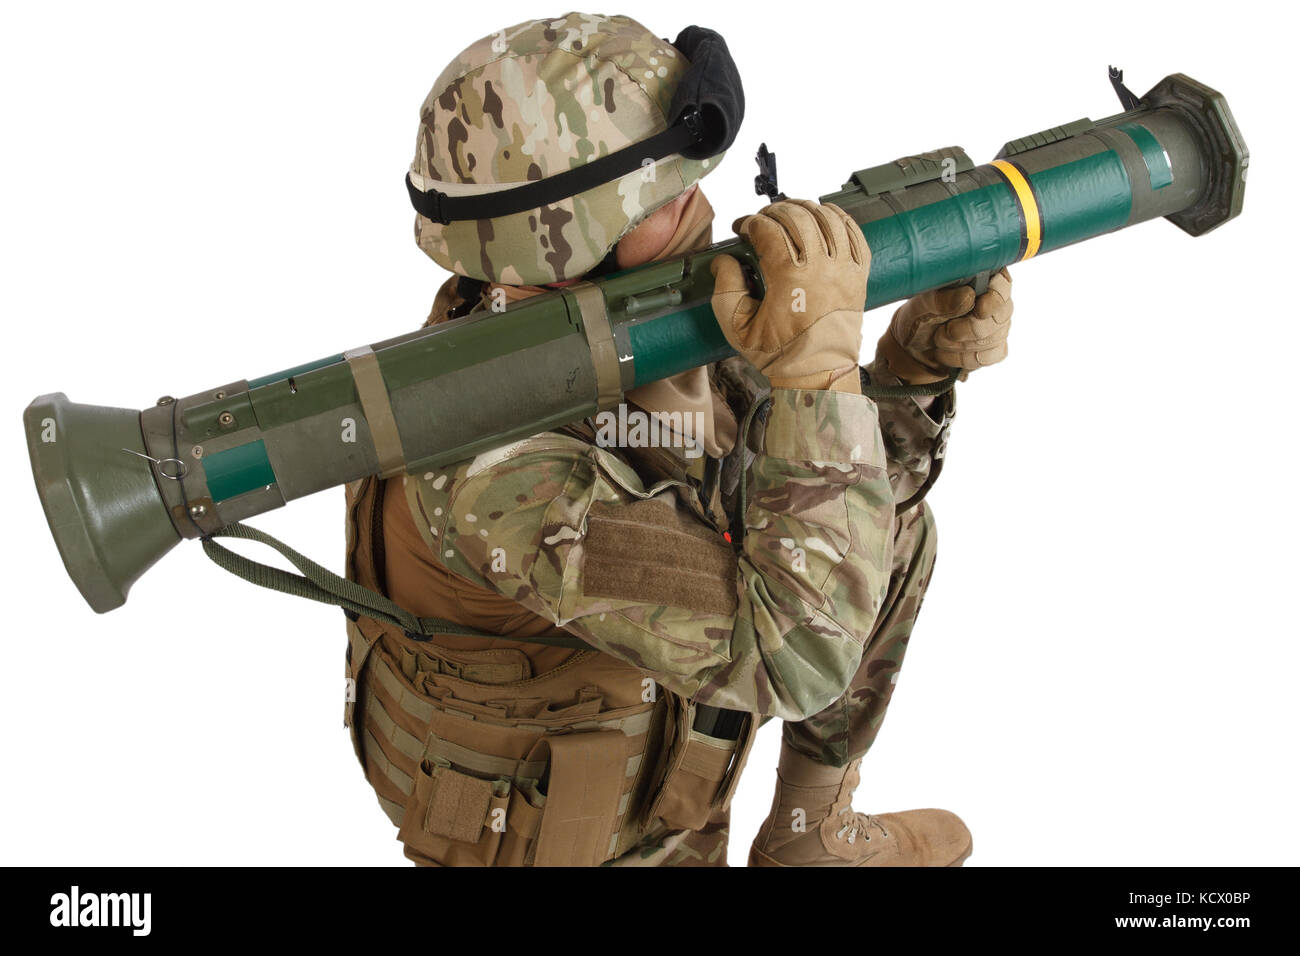 US ARMY soldier with recoilless rocket launcher isolated on white - Stock Image